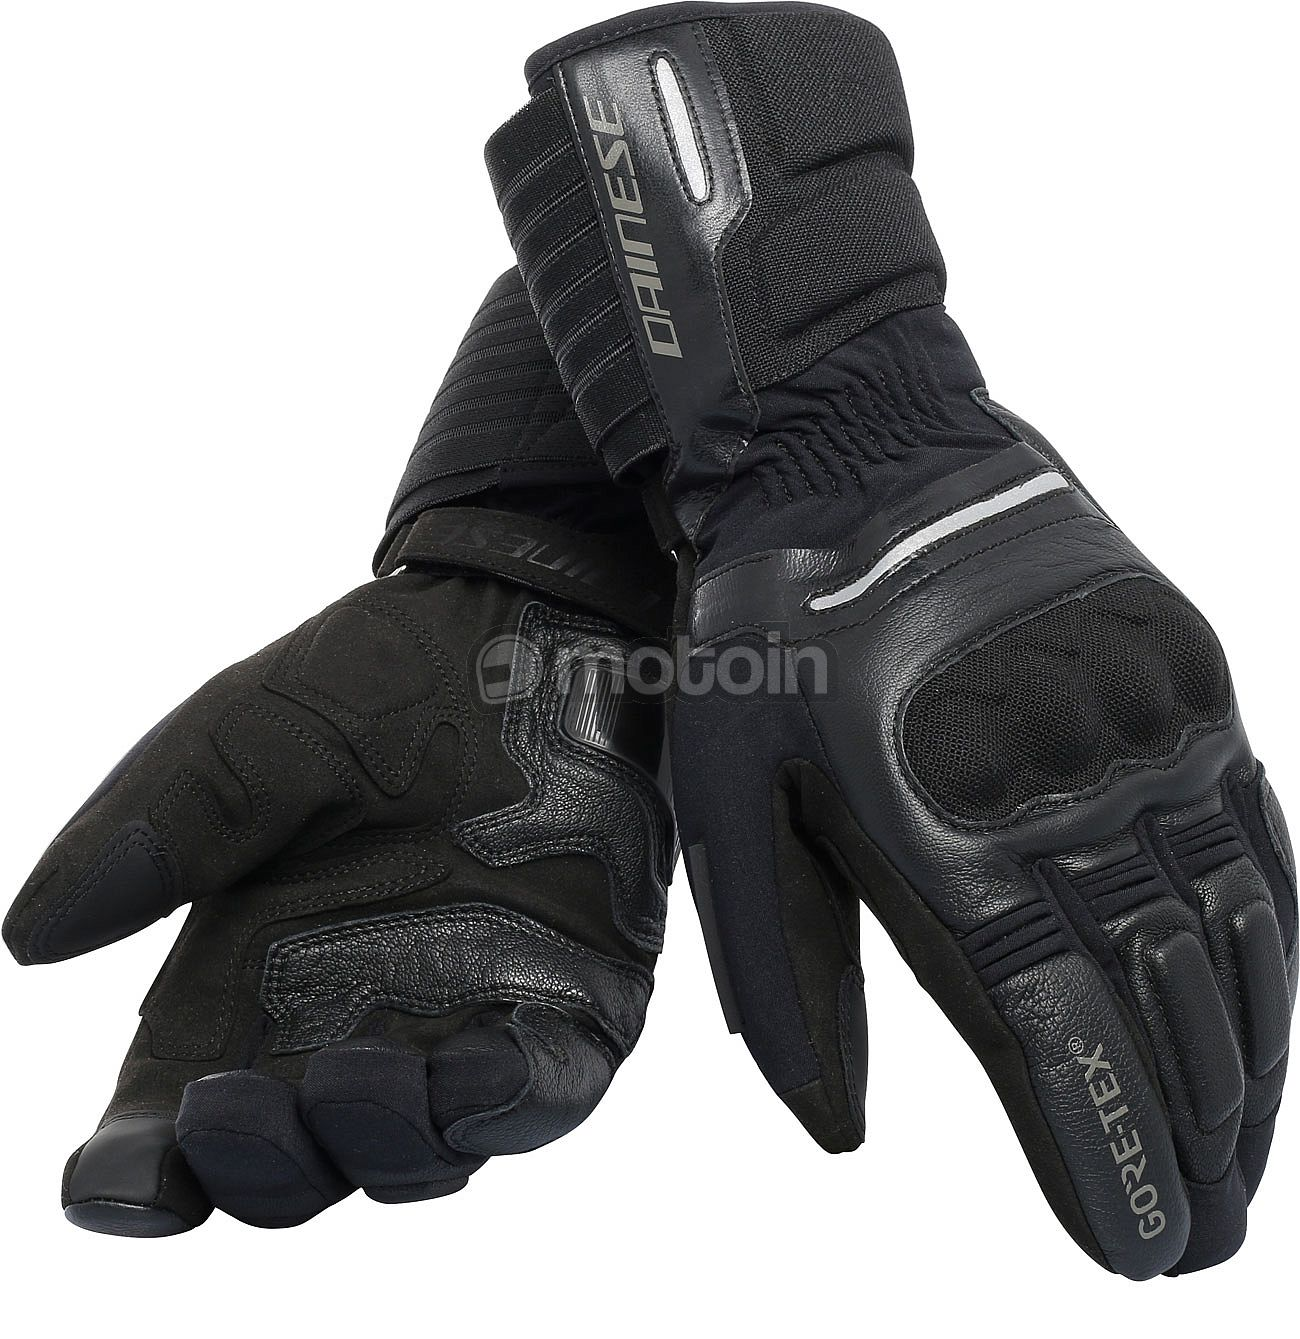 dainese solarys handschuhe lang gore tex. Black Bedroom Furniture Sets. Home Design Ideas